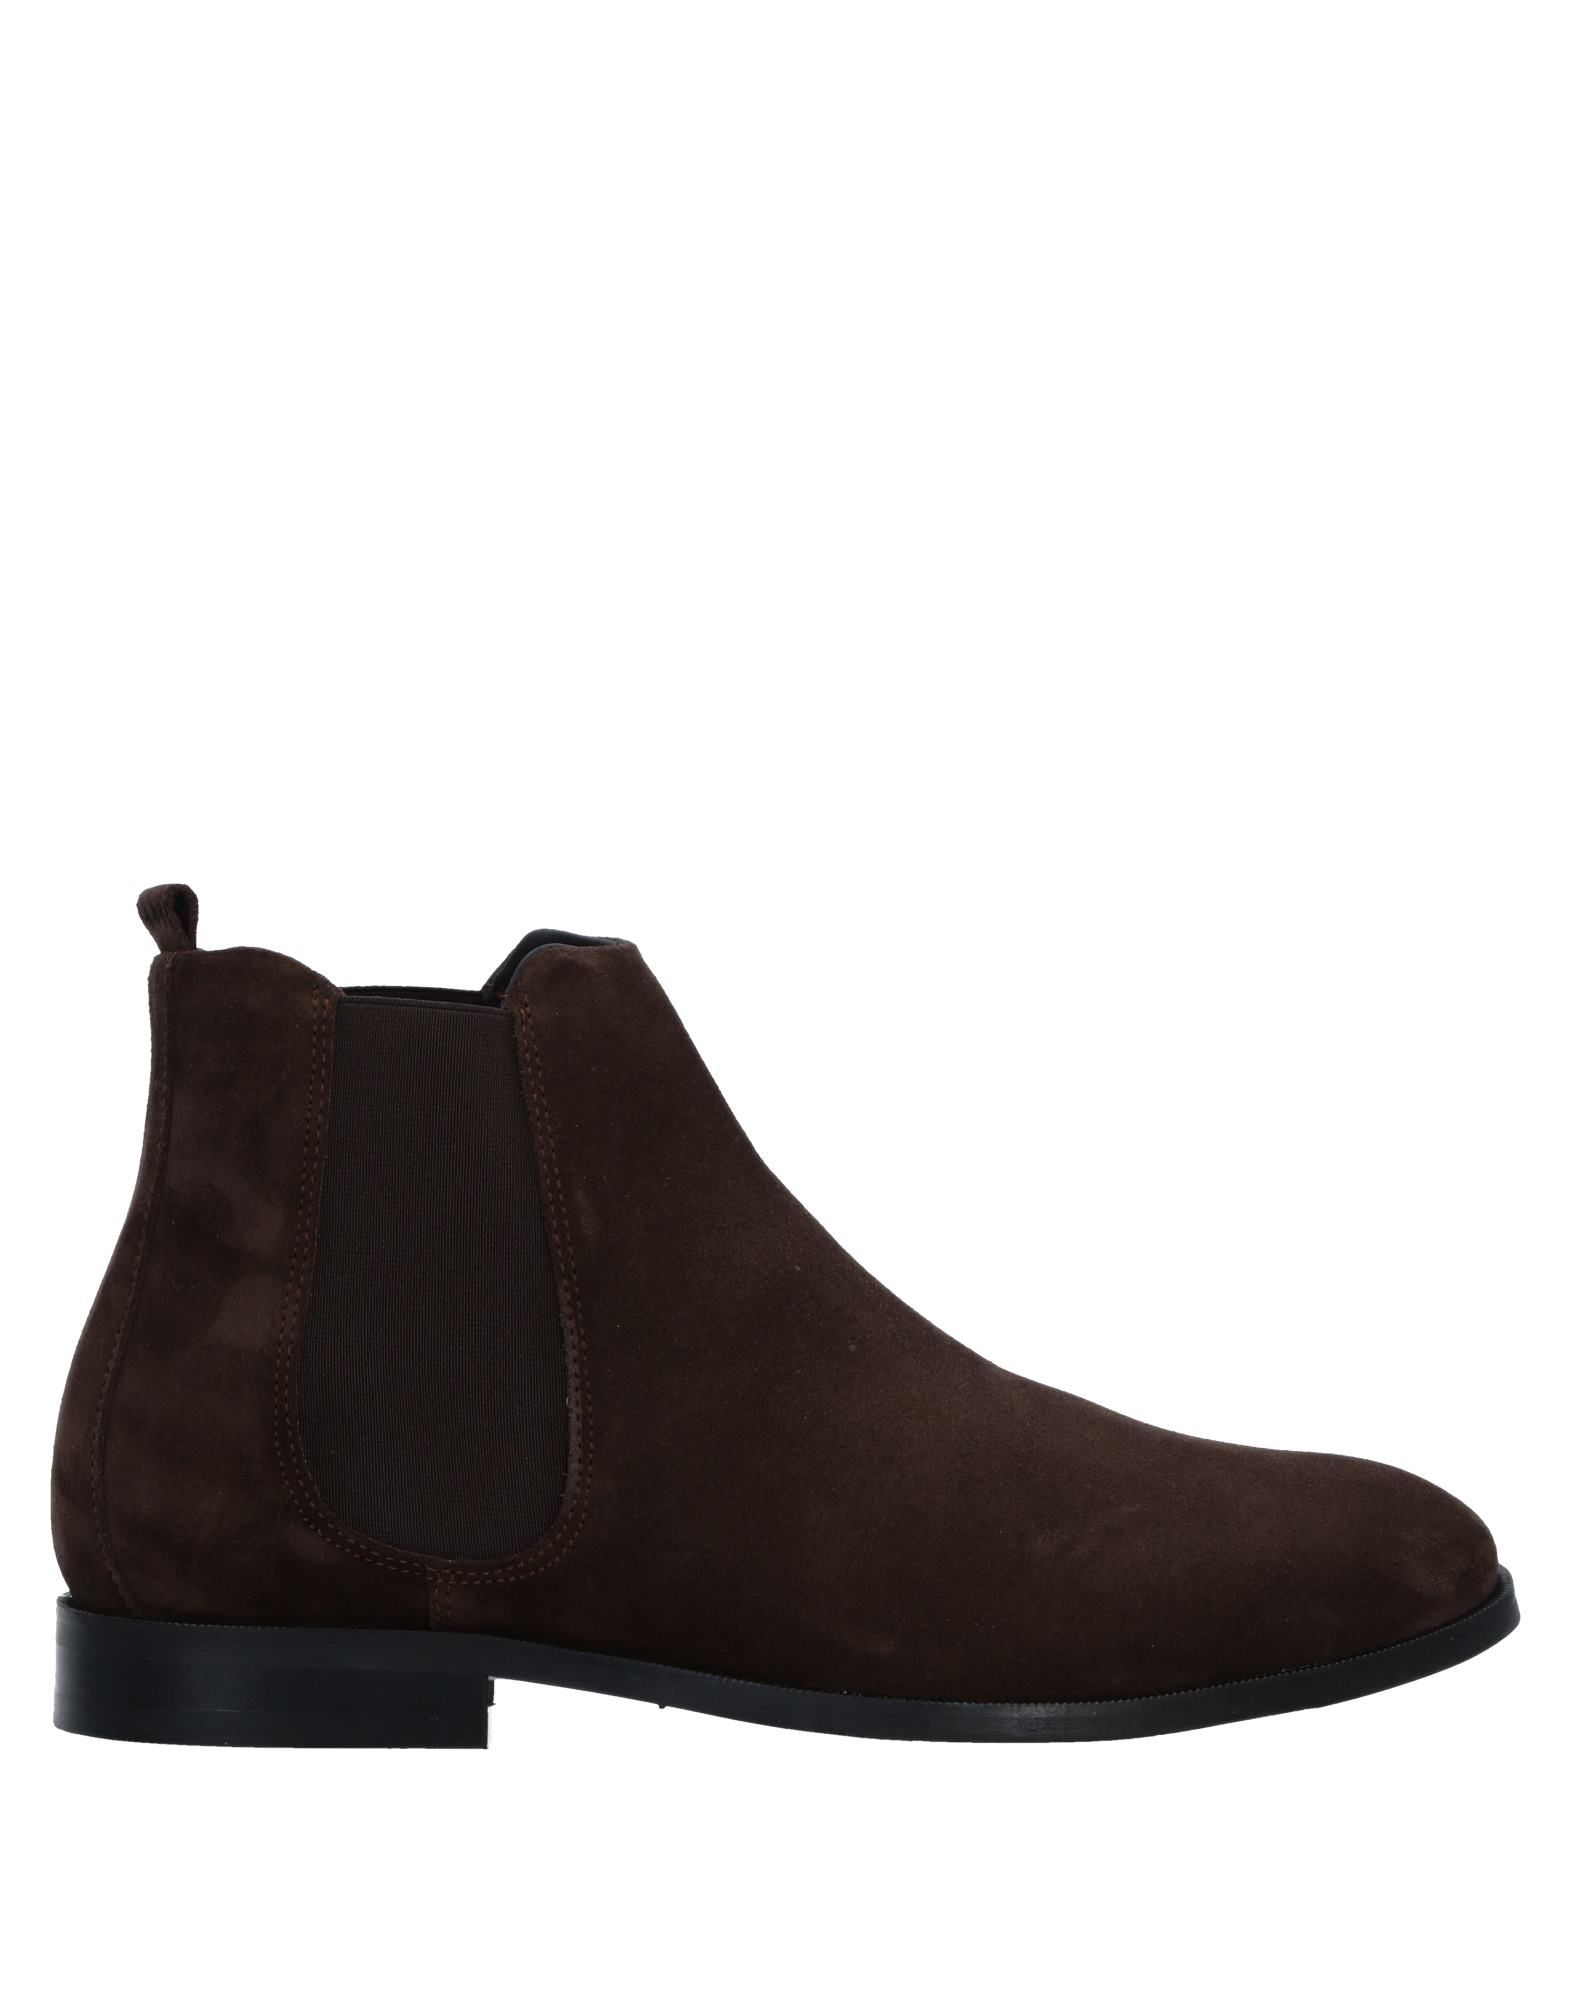 ROYAL REPUBLIQ Boots in Dark Brown